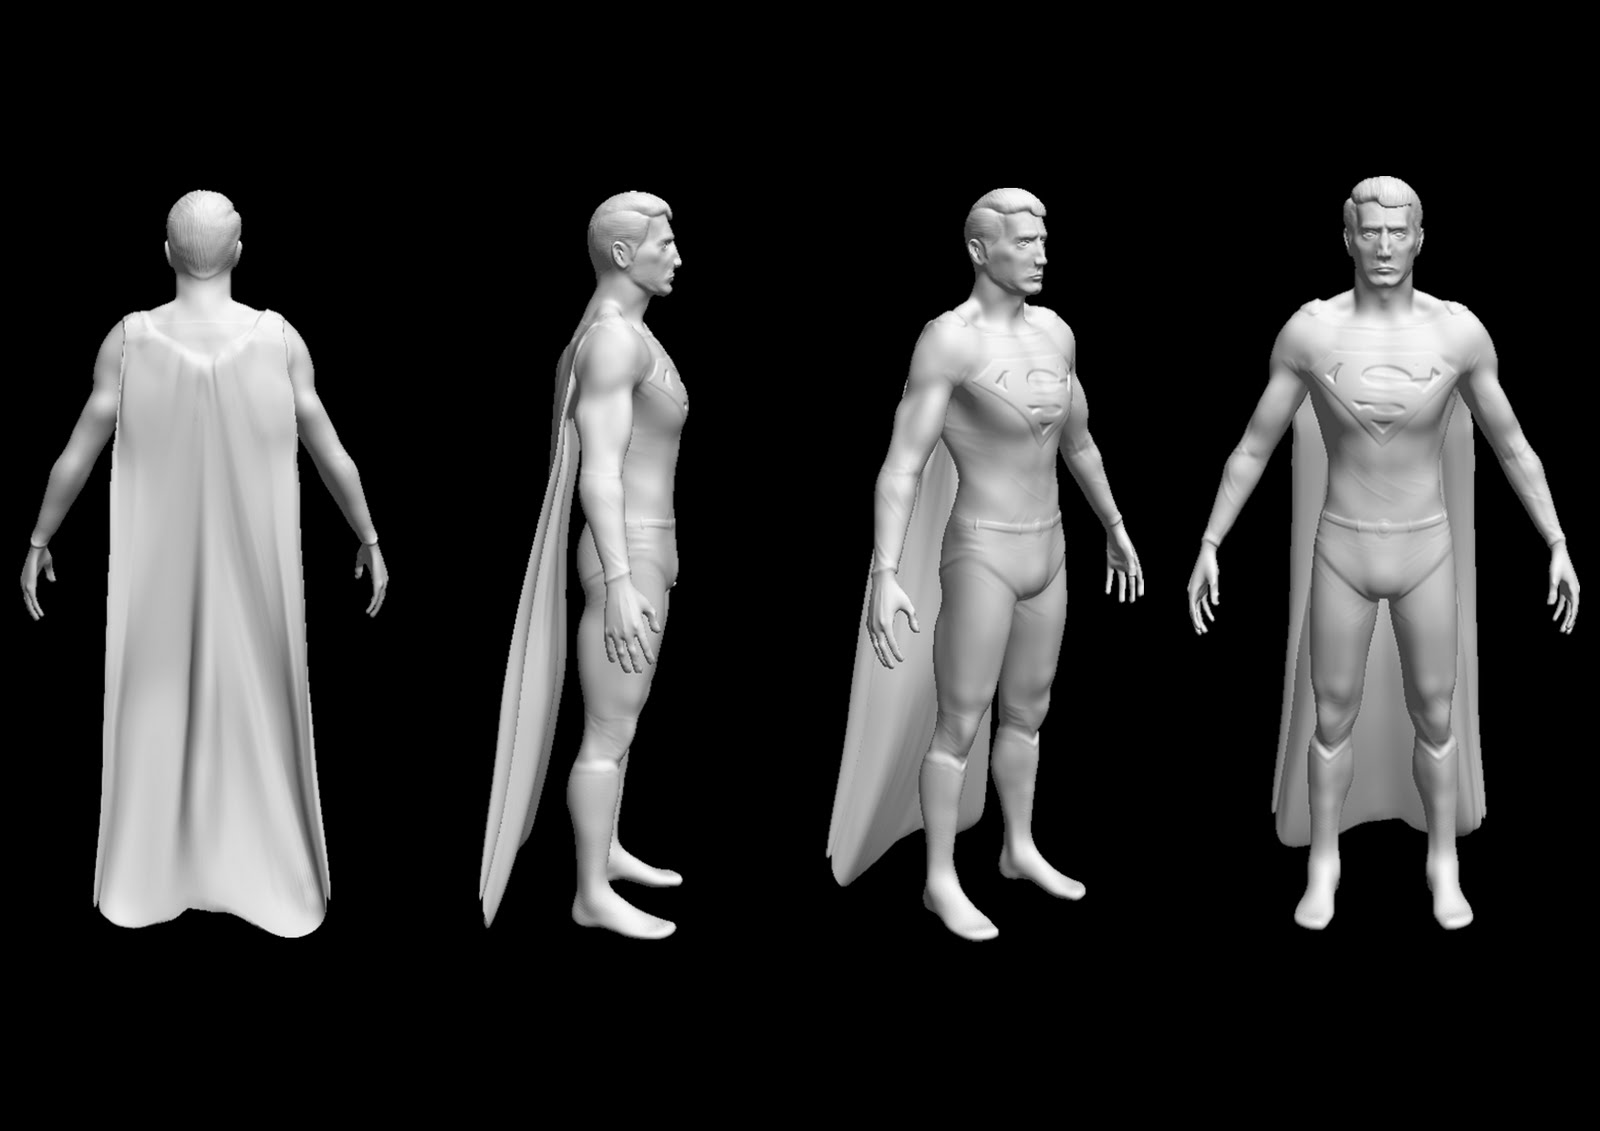 Jake Jones' Digital Animation: MudBox Sculpting